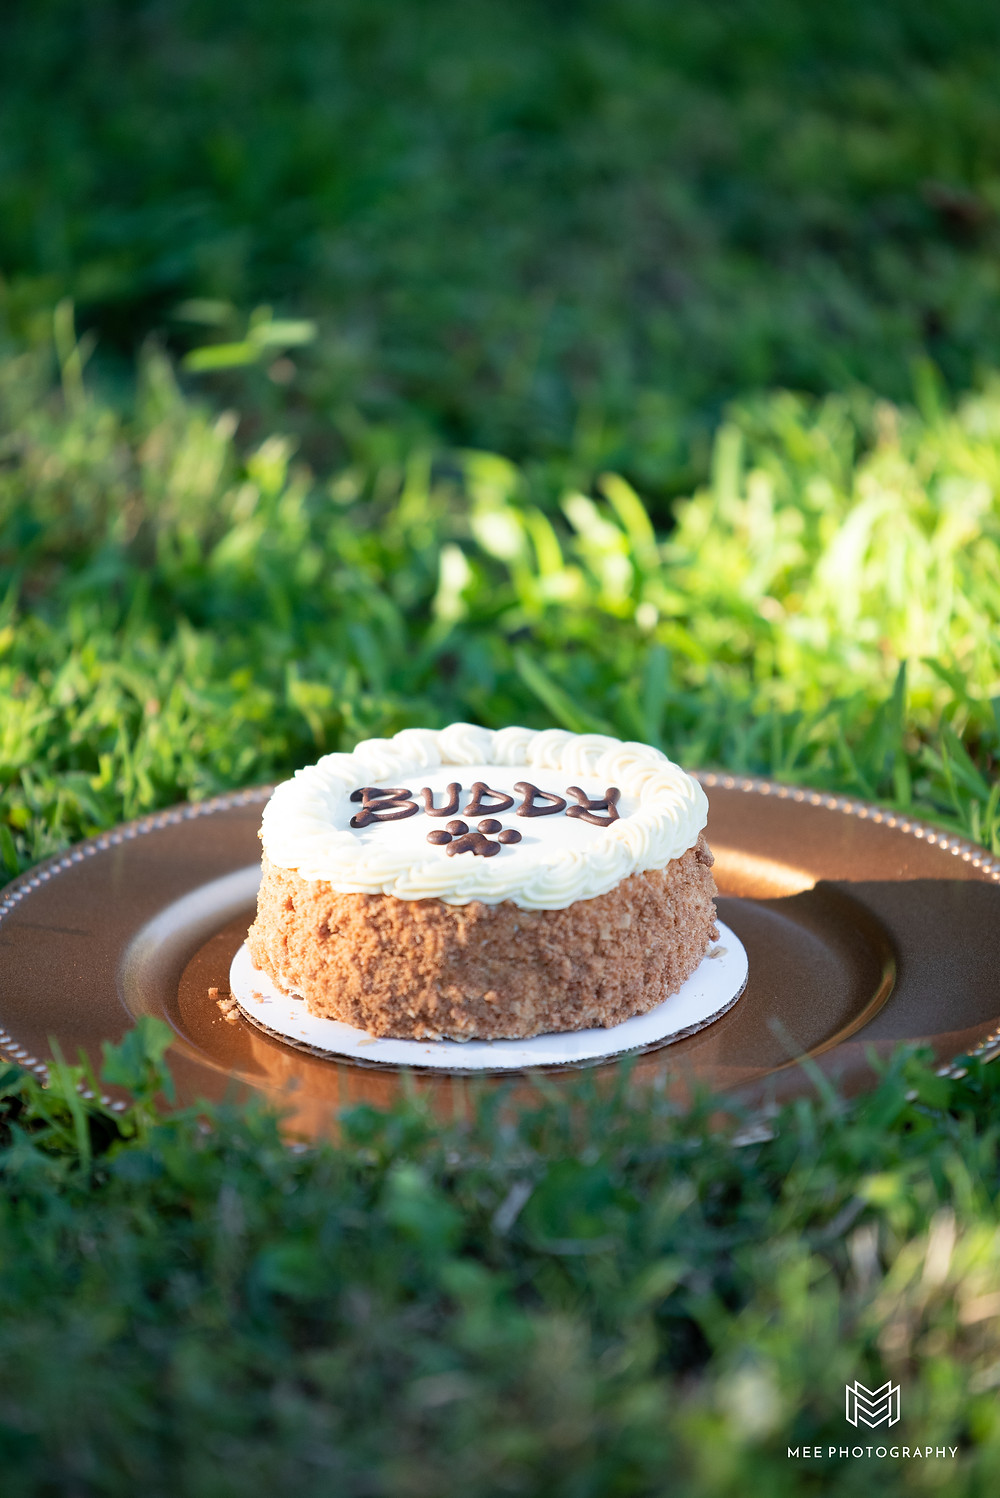 Doggy carrot cake from Three Dog Bakery in Sewickley, Pennsylvania